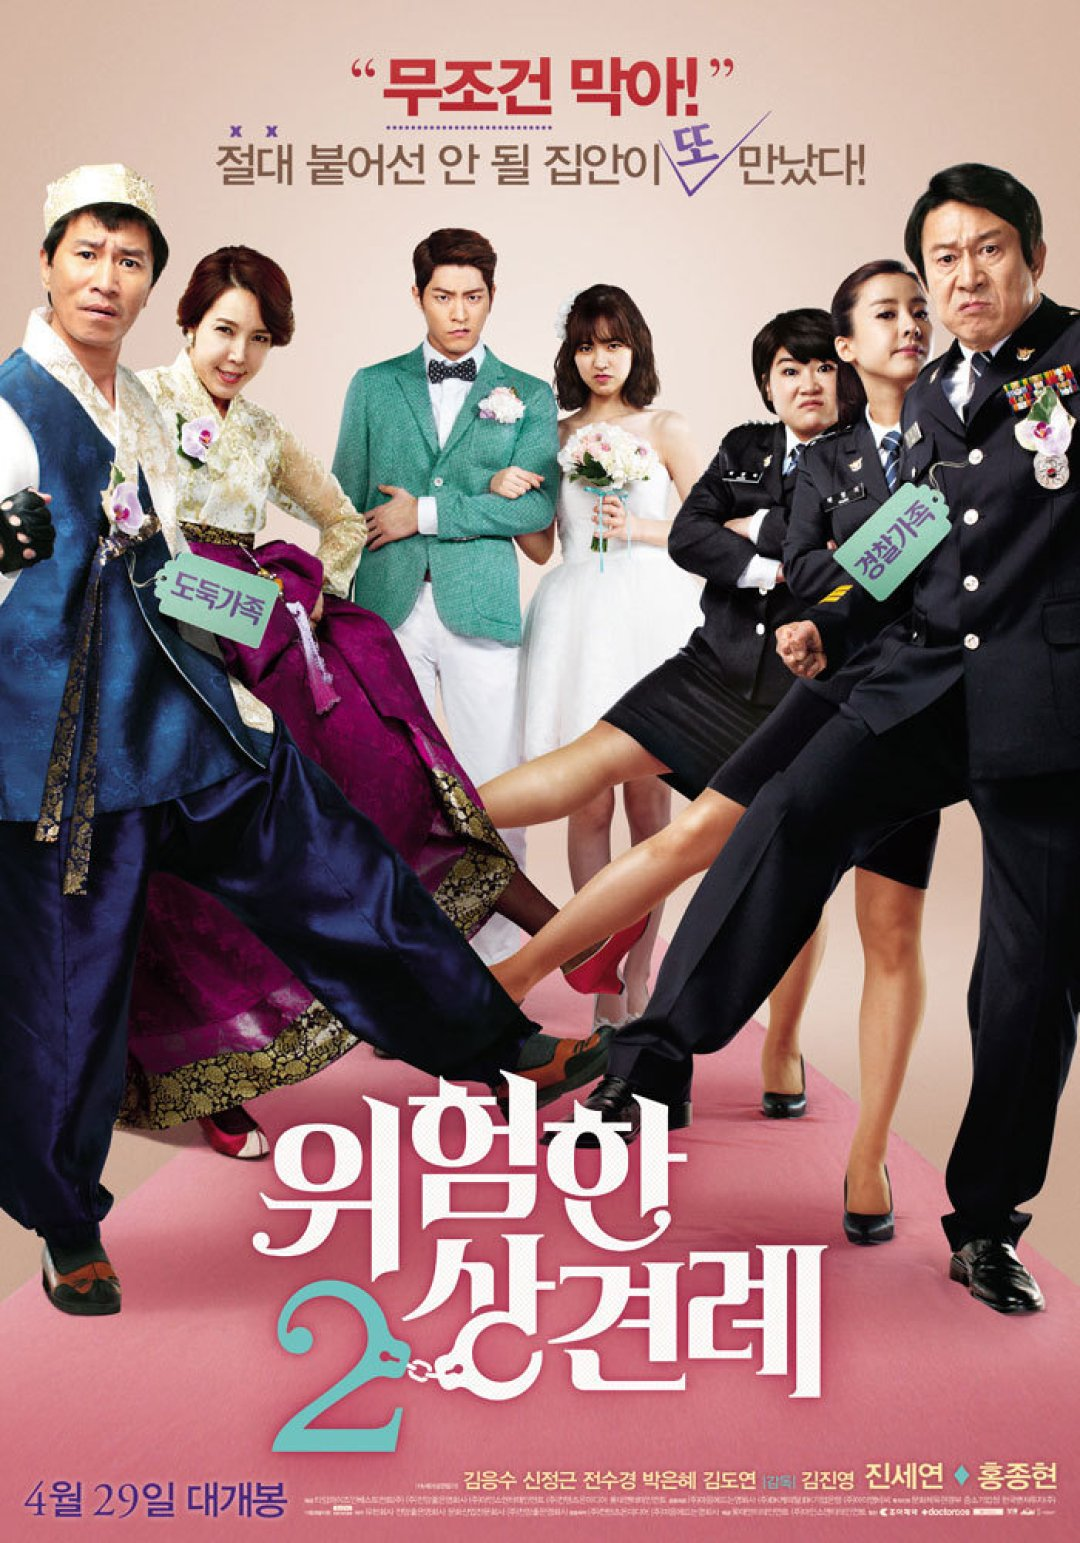 Sui Gia Đại Chiến 2 (Gặp Gỡ Thông Gia 2) - Enemies In-Law / Dangerous Meeting of In-Laws 2